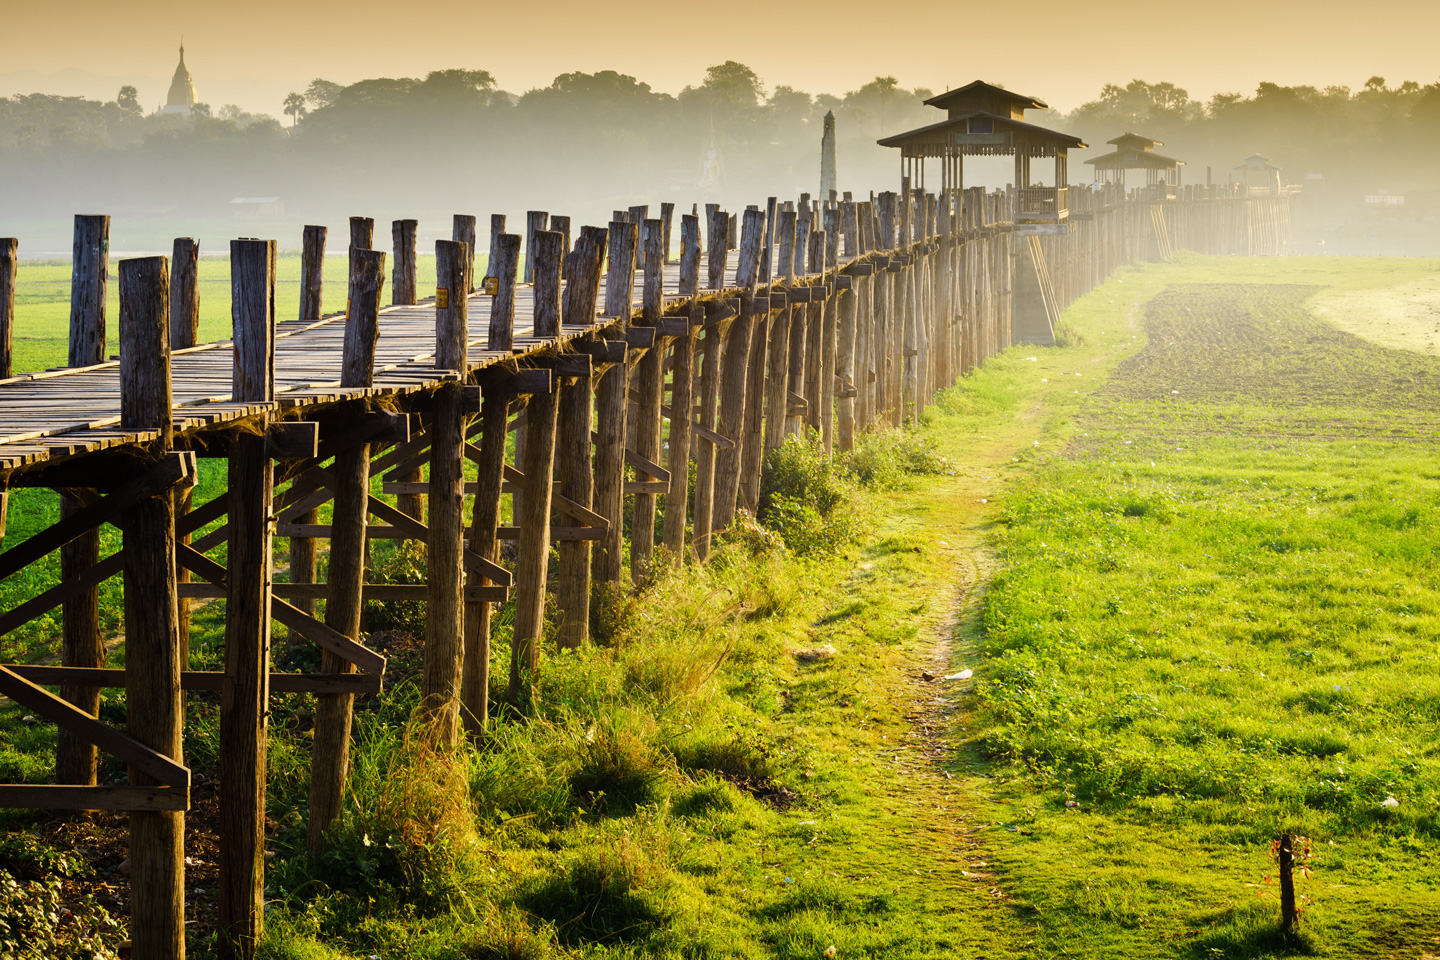 U-bein bridge in Myanmar